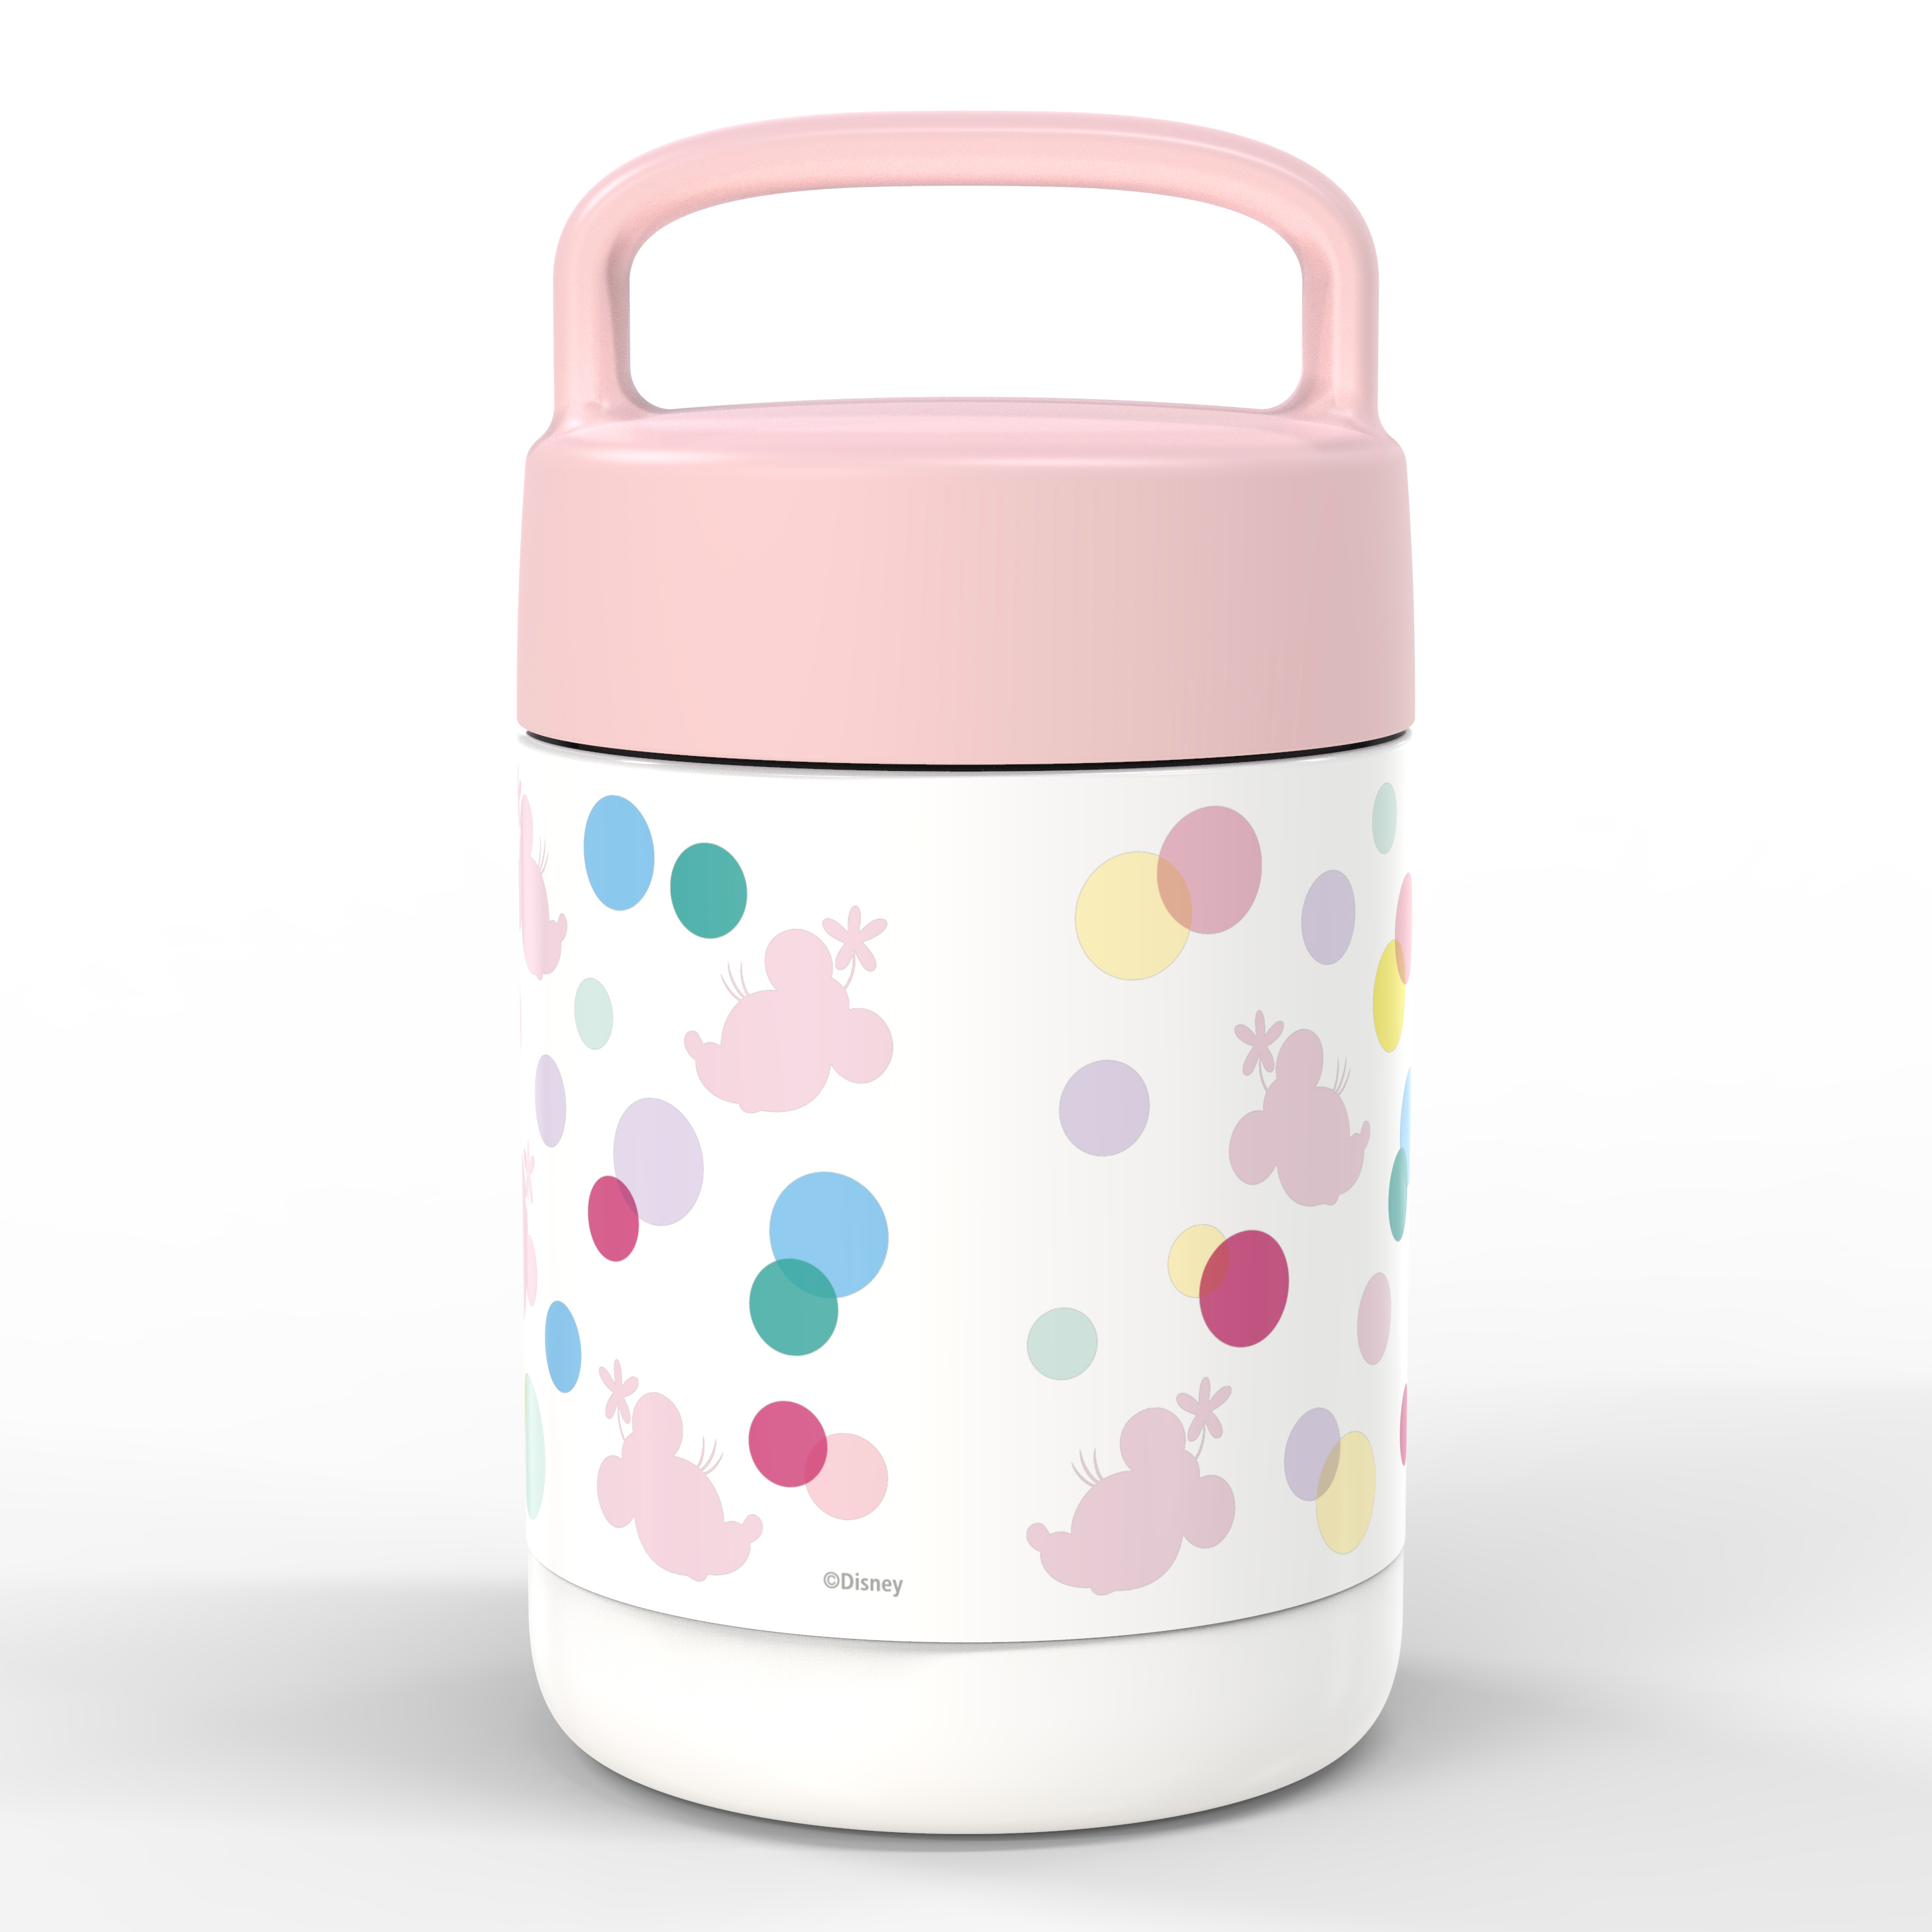 Disney Reusable Vacuum Insulated Stainless Steel Food Container, Minnie Mouse slideshow image 4